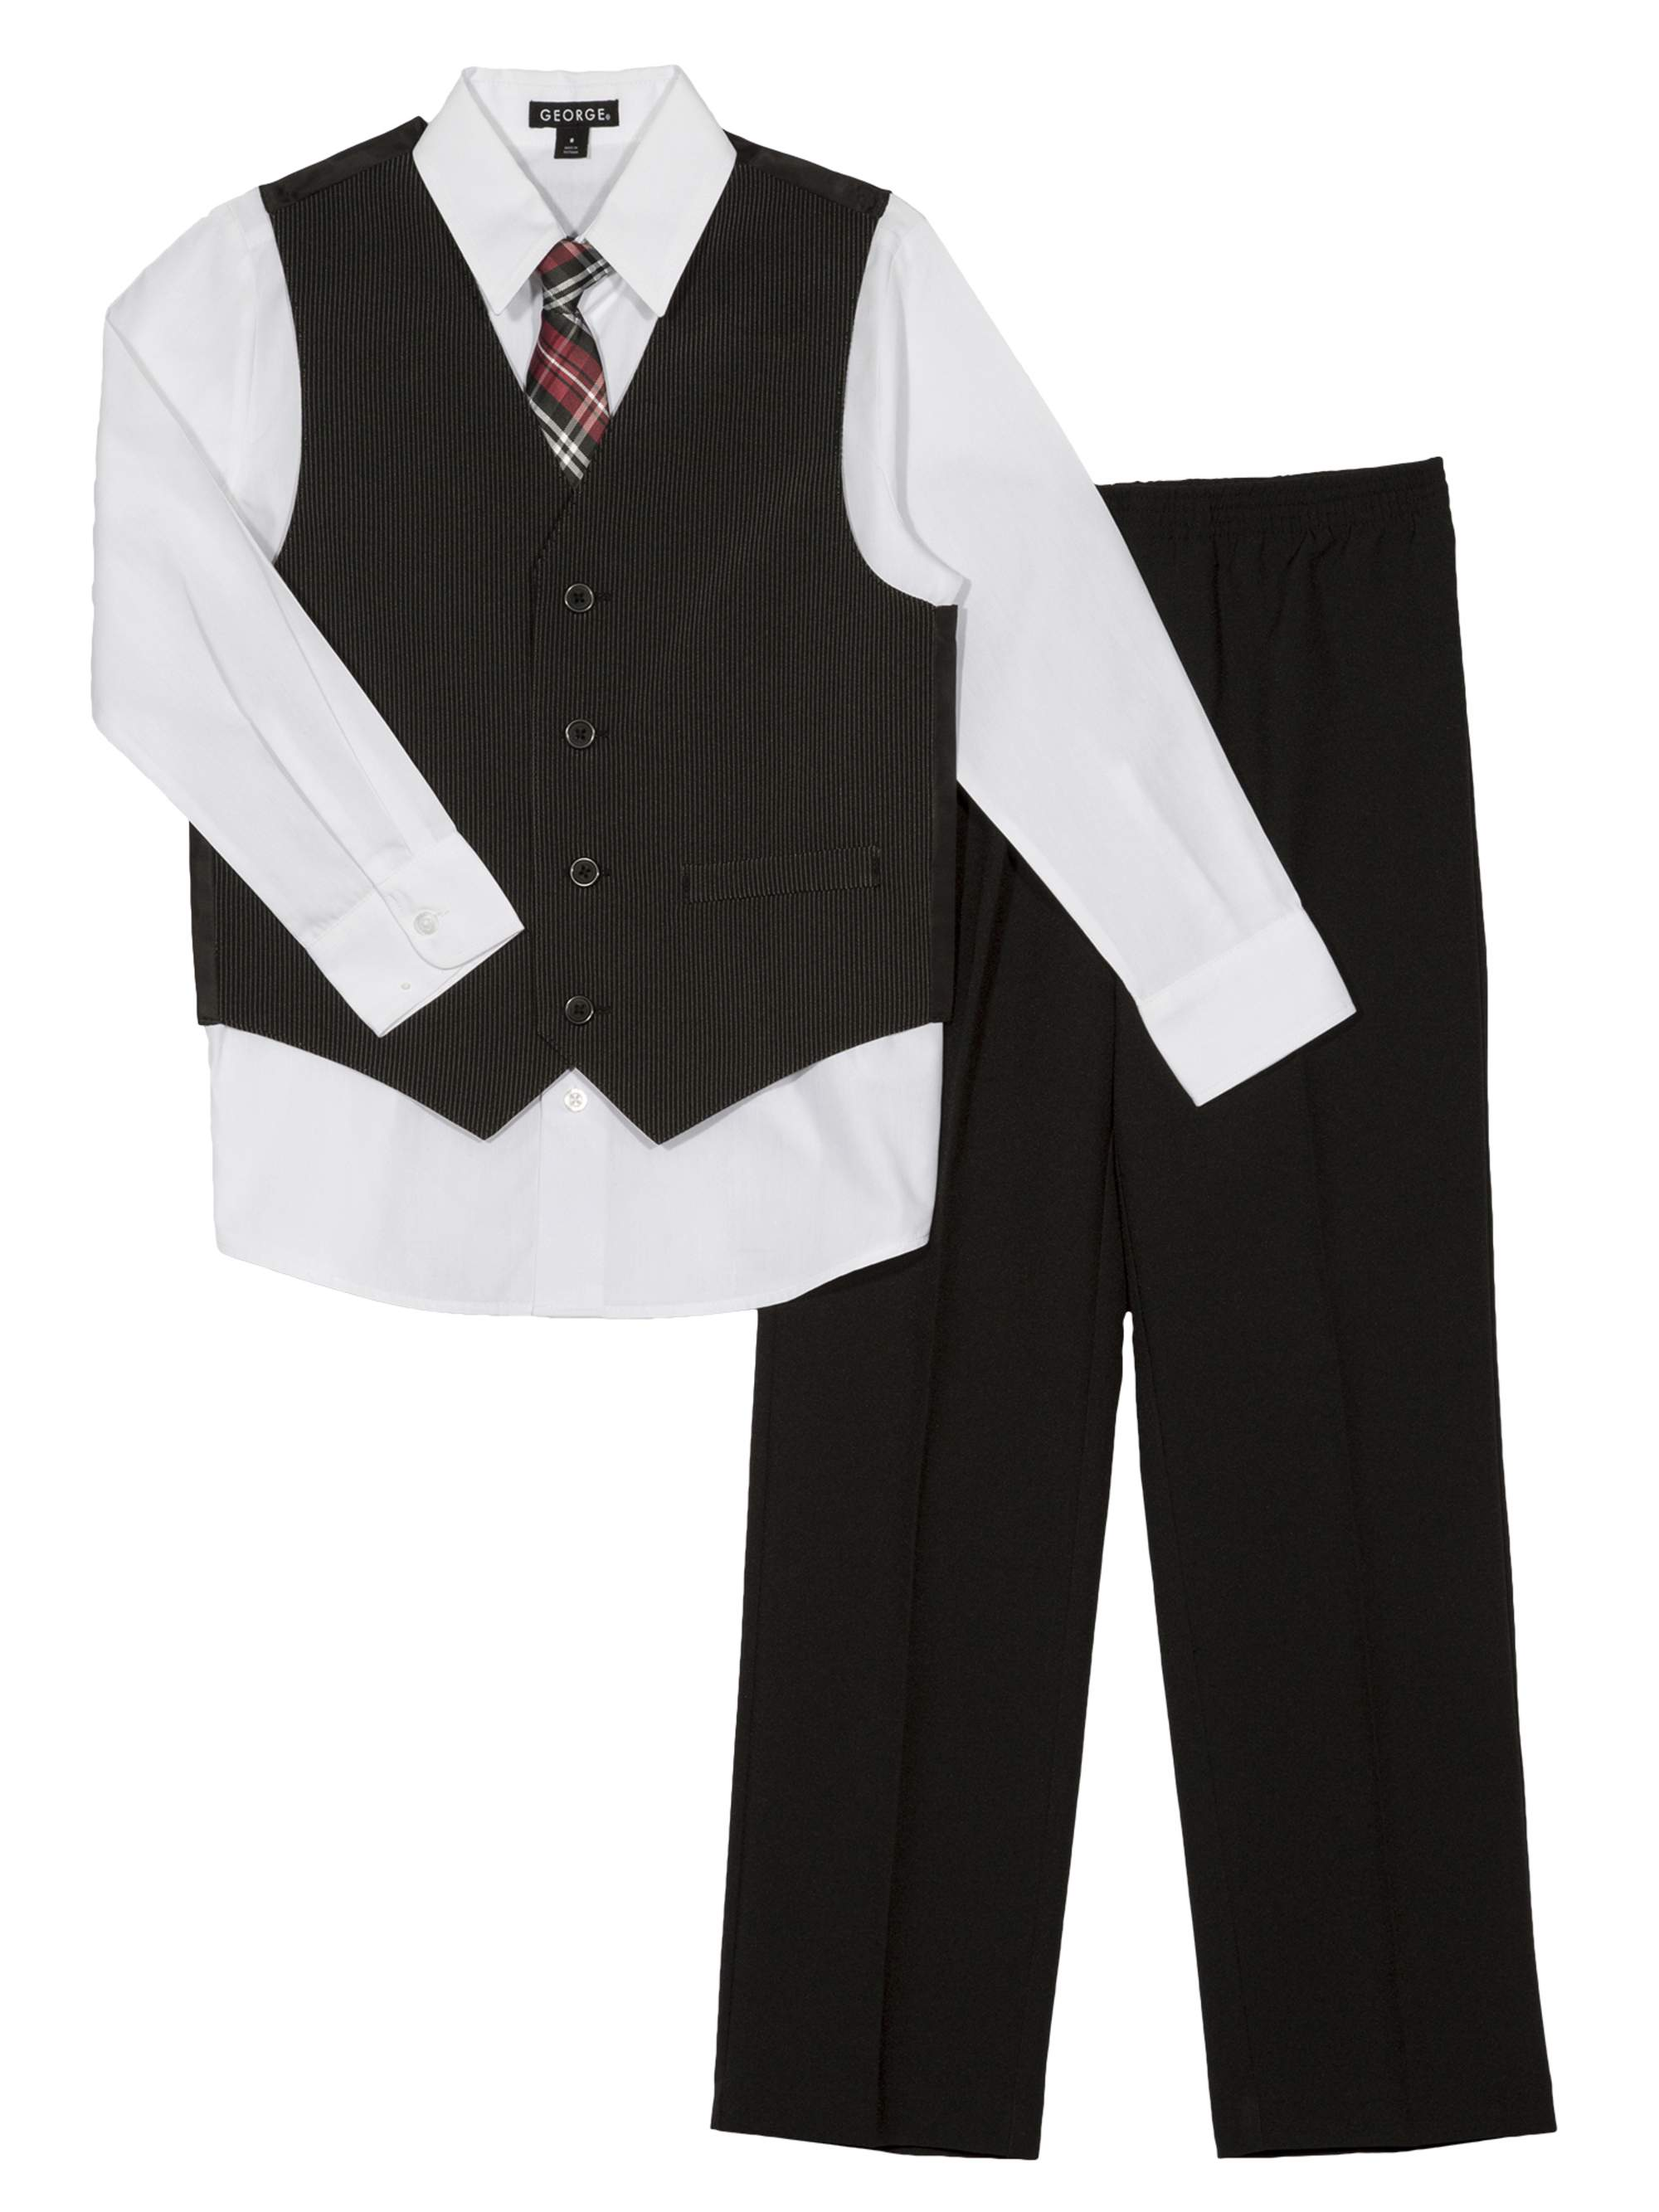 Boys' Narrow Stripe Special Occasion Dress Outfit Set